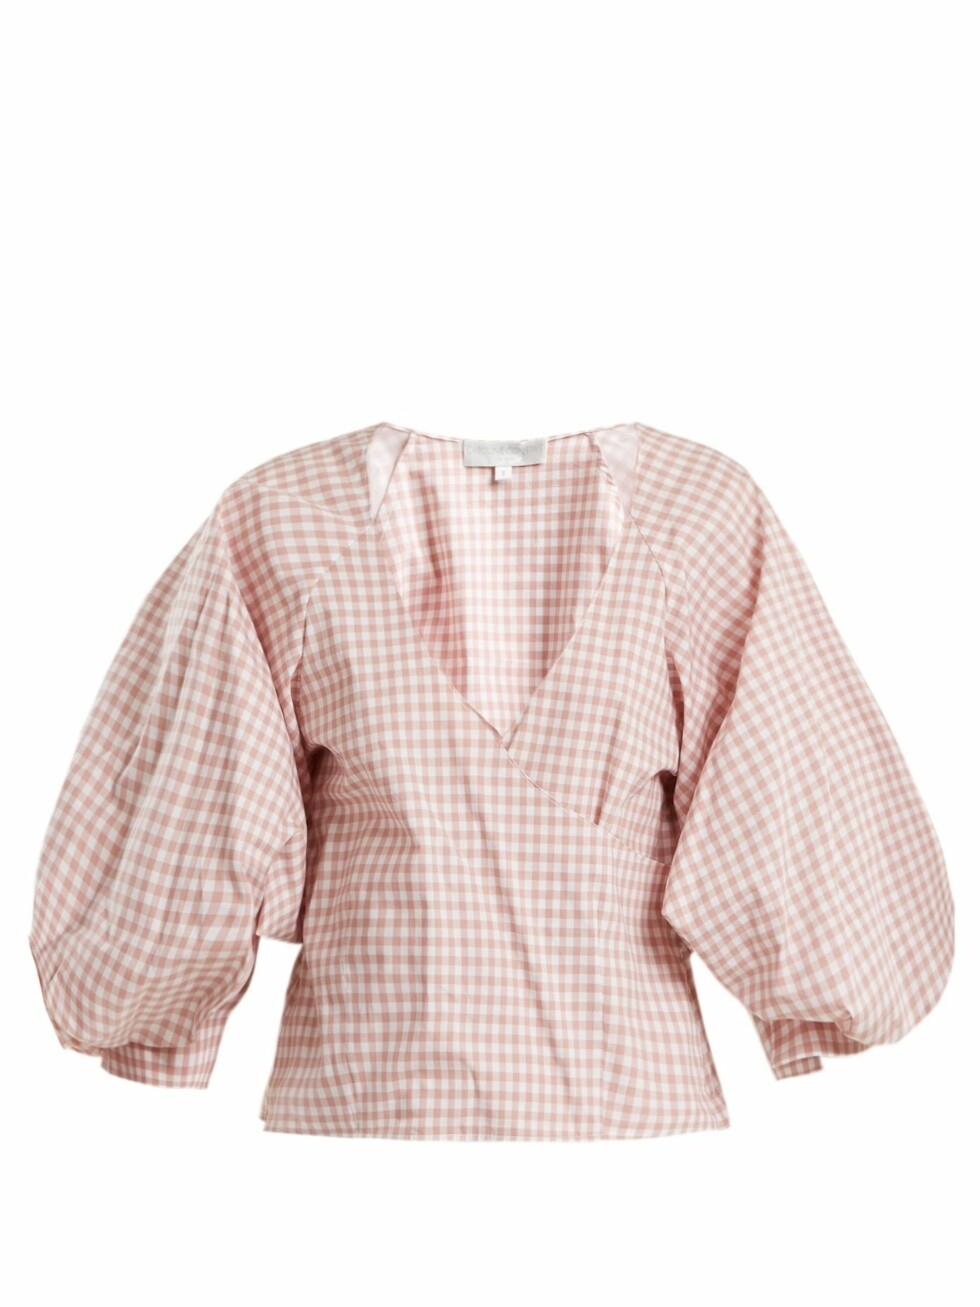 <strong>Topp fra Caroline Constas |1940,-| https:</strong>//www.matchesfashion.com/intl/products/Caroline-Constas-Josie-gingham-print-puff-sleeved-cotton-top-1190884